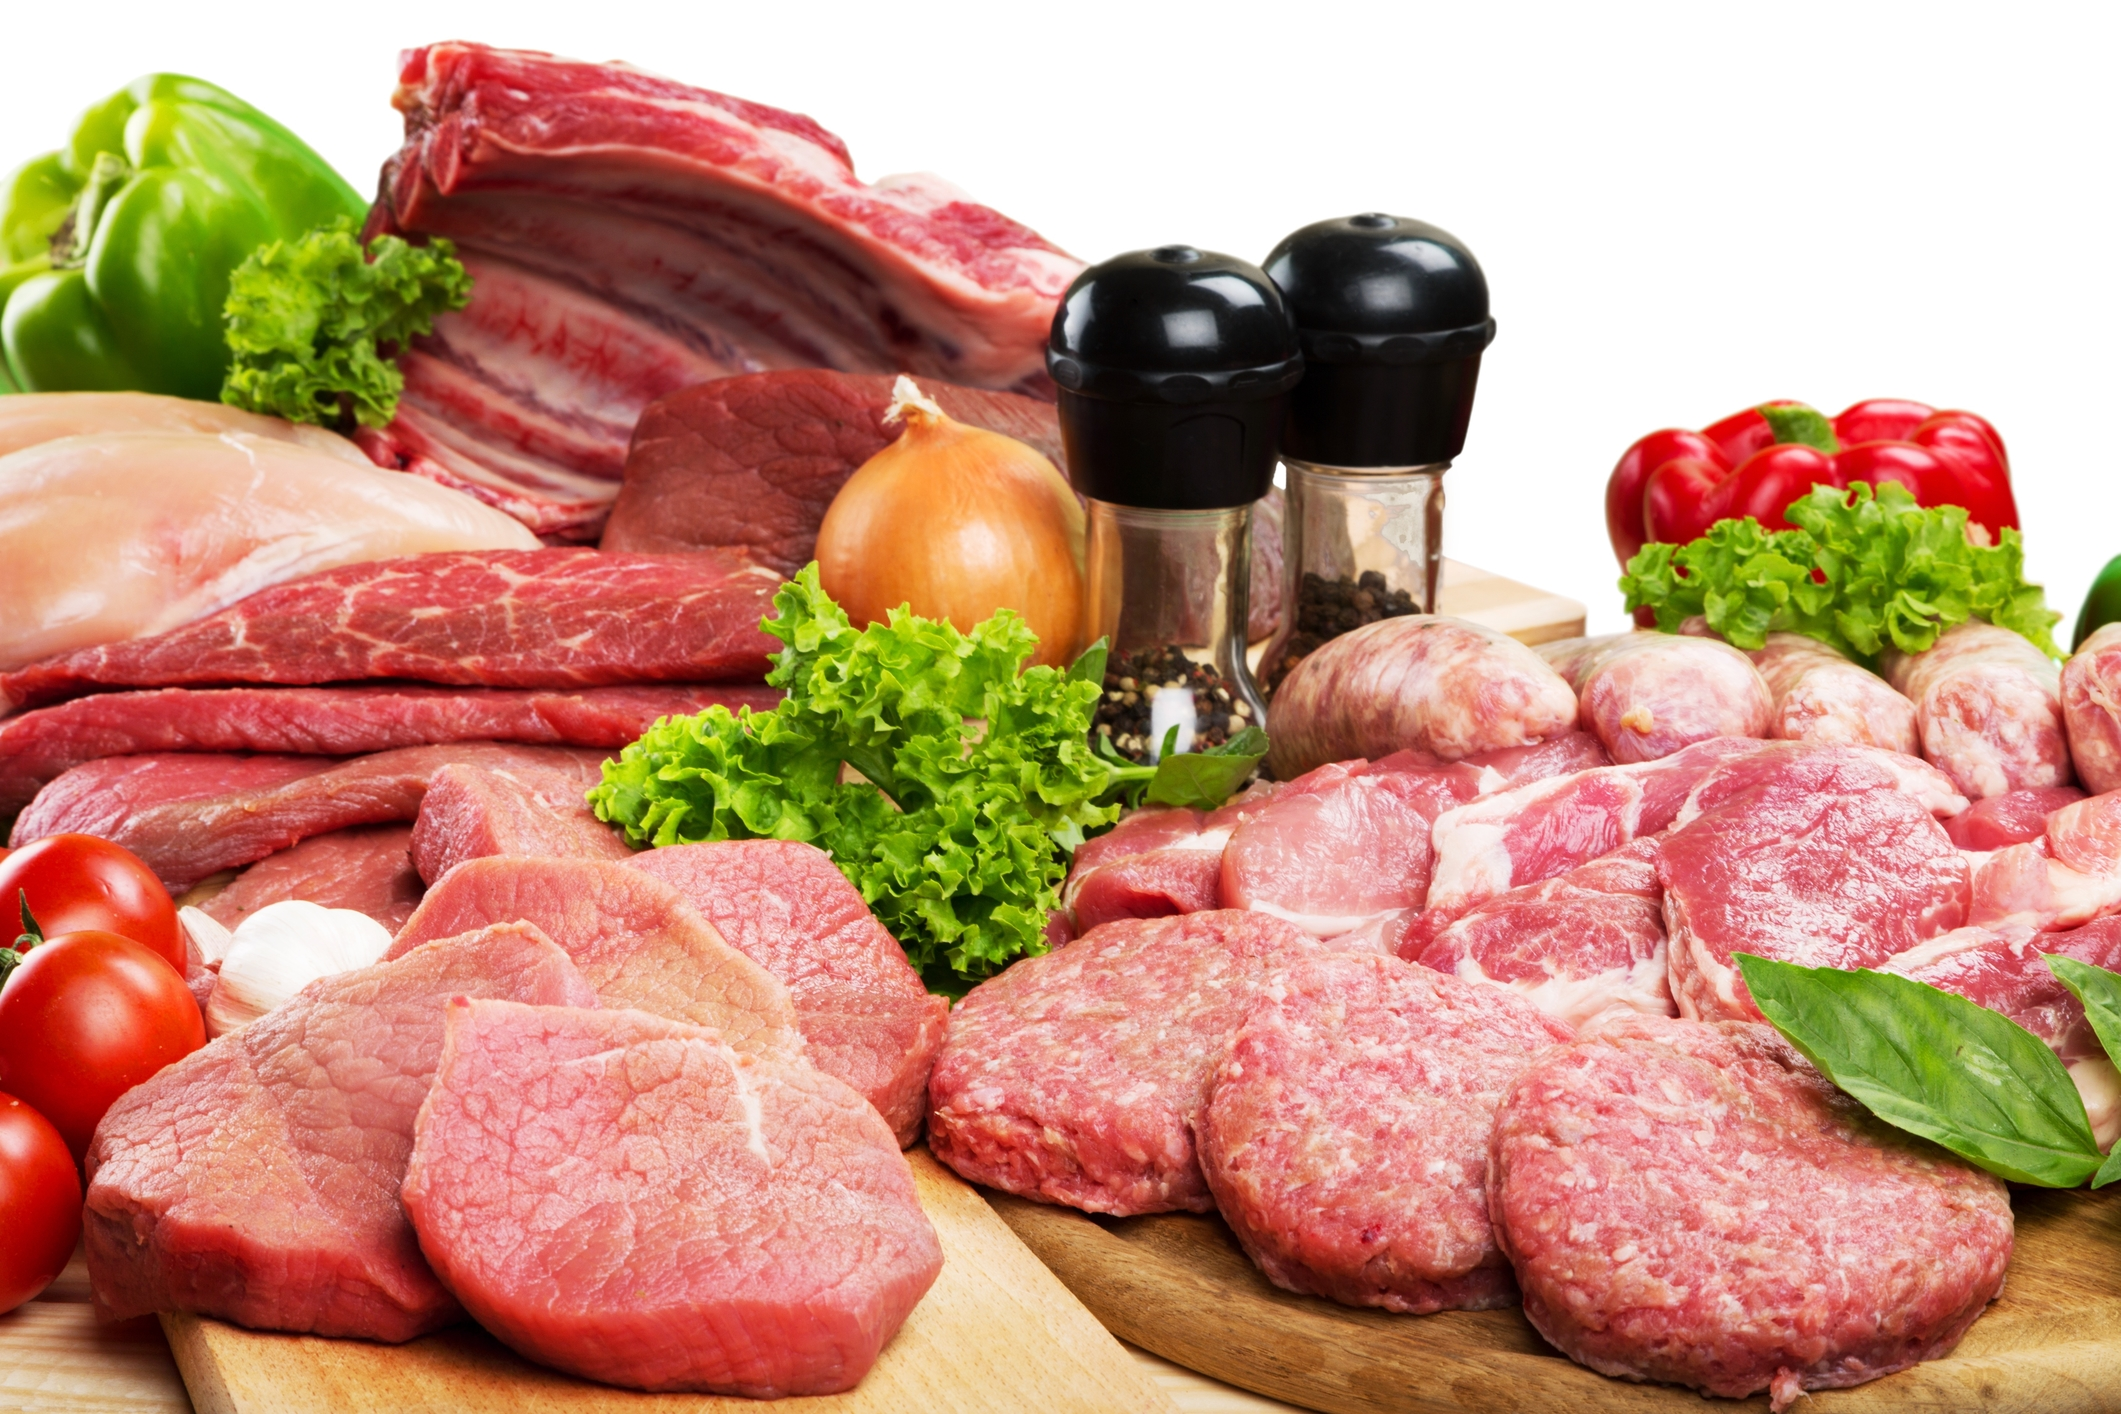 Pressure cooker meats and vegetables